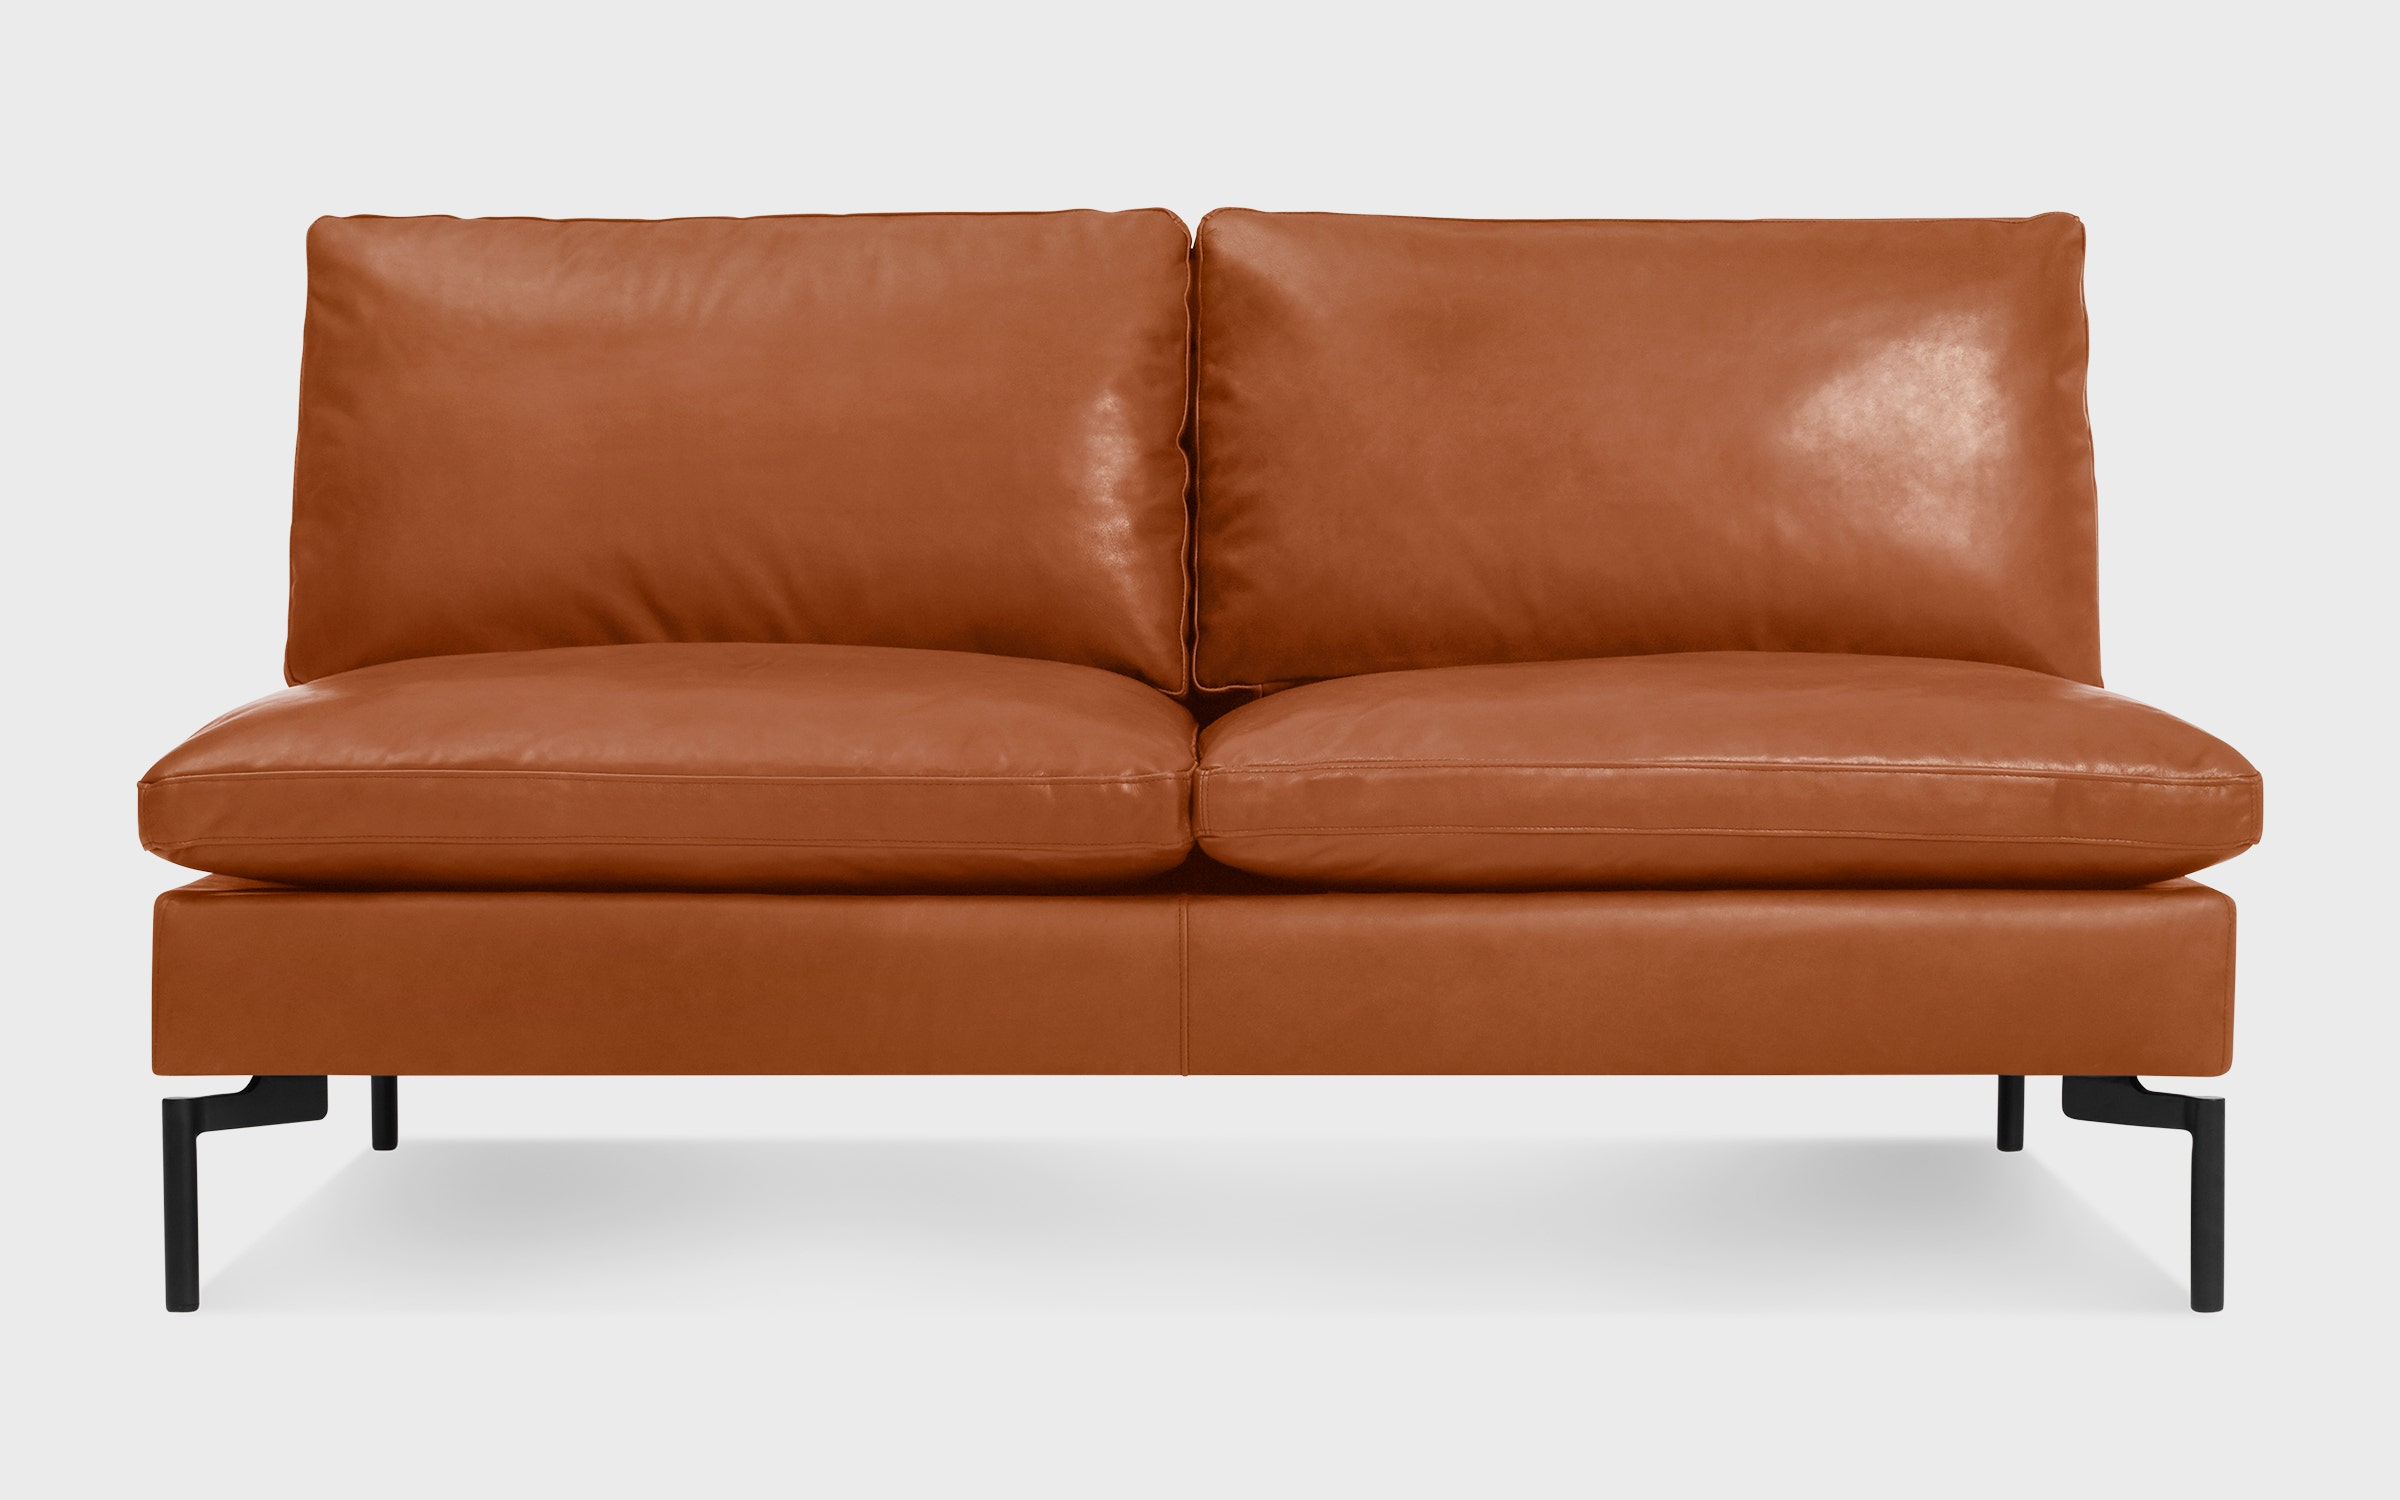 Miraculous New Standard 60 Armless Leather Sofa Ncnpc Chair Design For Home Ncnpcorg